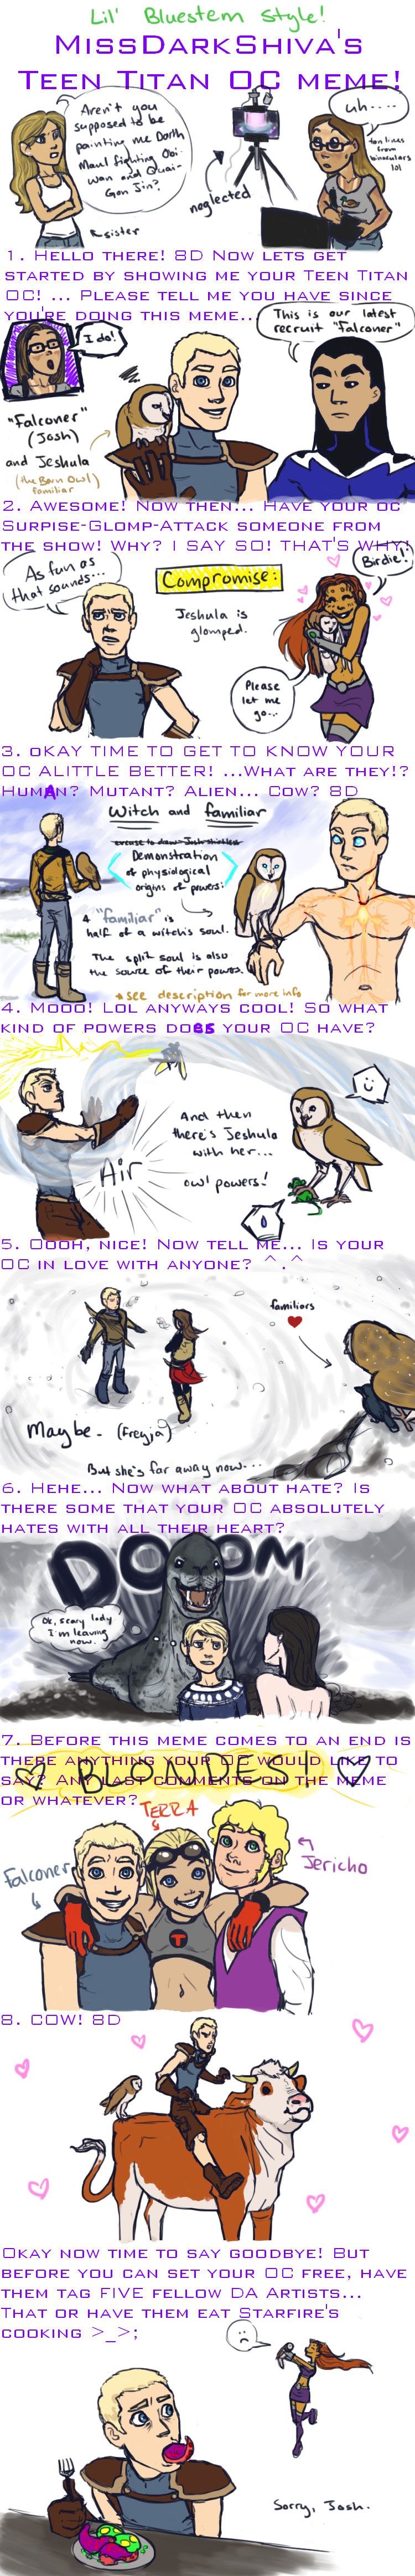 TTOC Meme: Falconer by LilBluestem